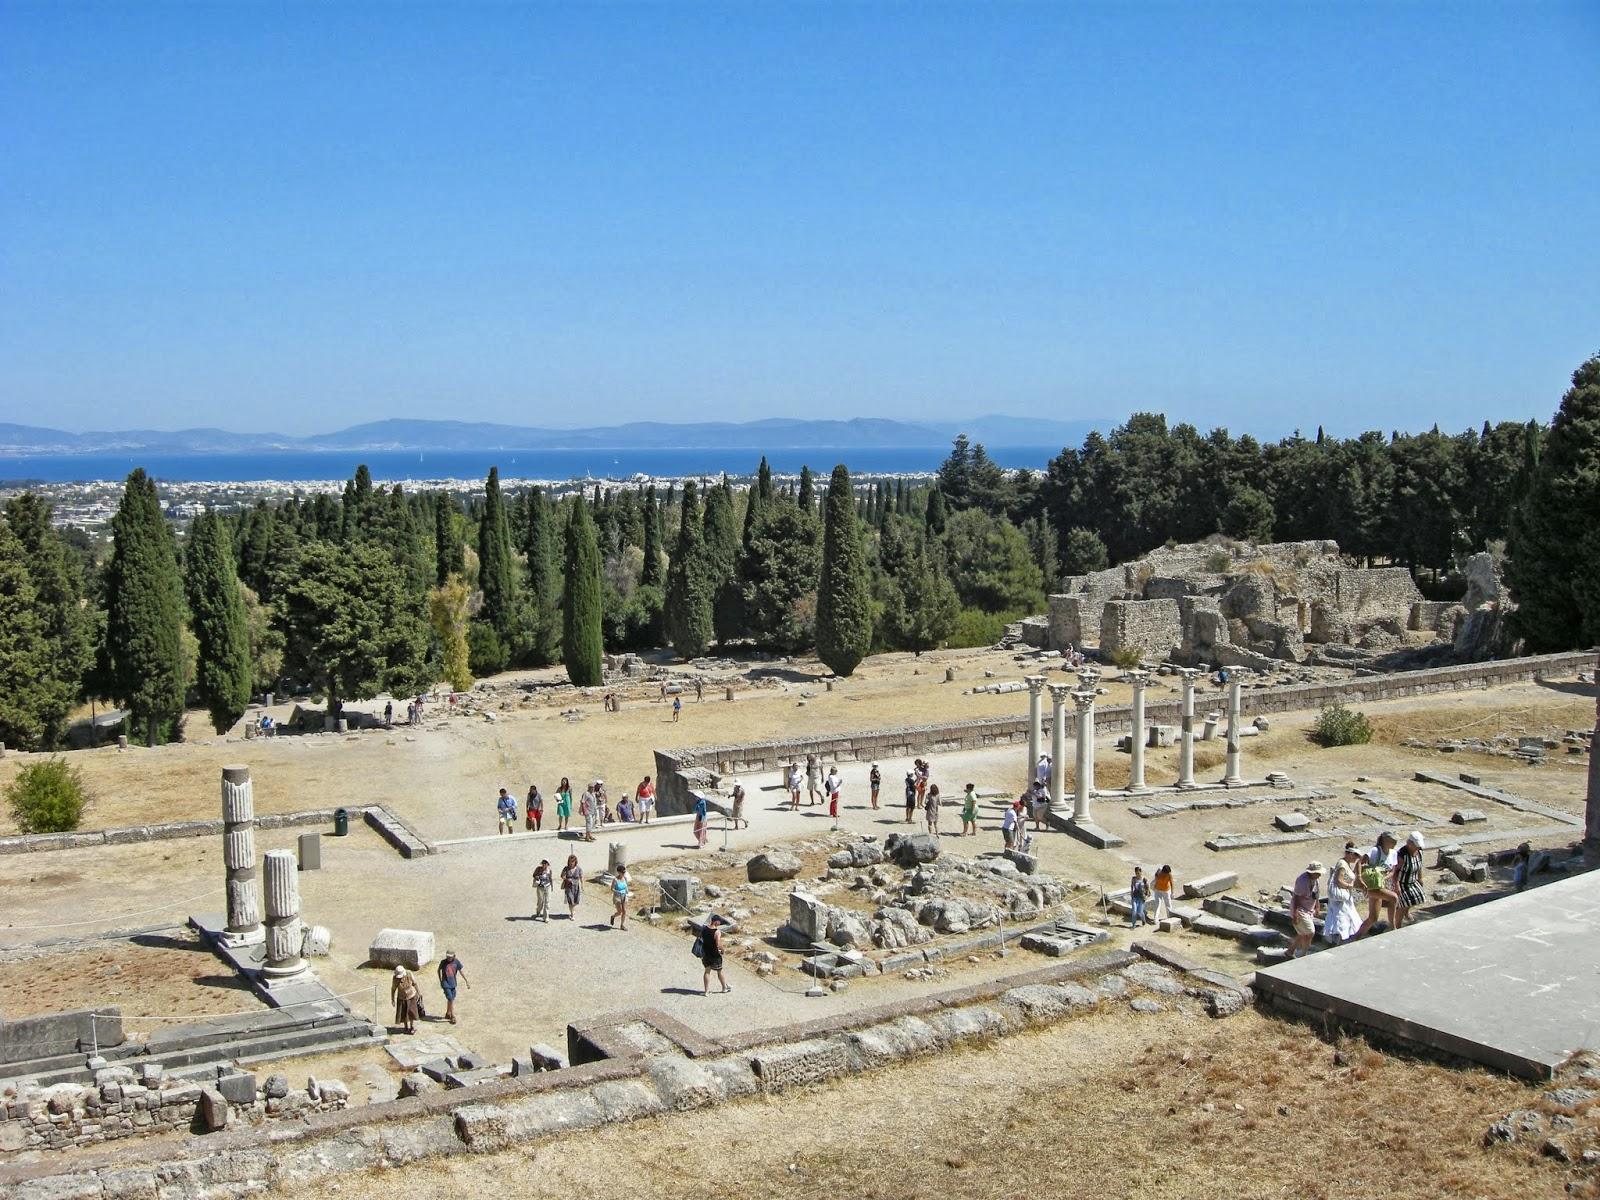 BIKE CLASSICAL: Kos and the Ancient Asklepieion!